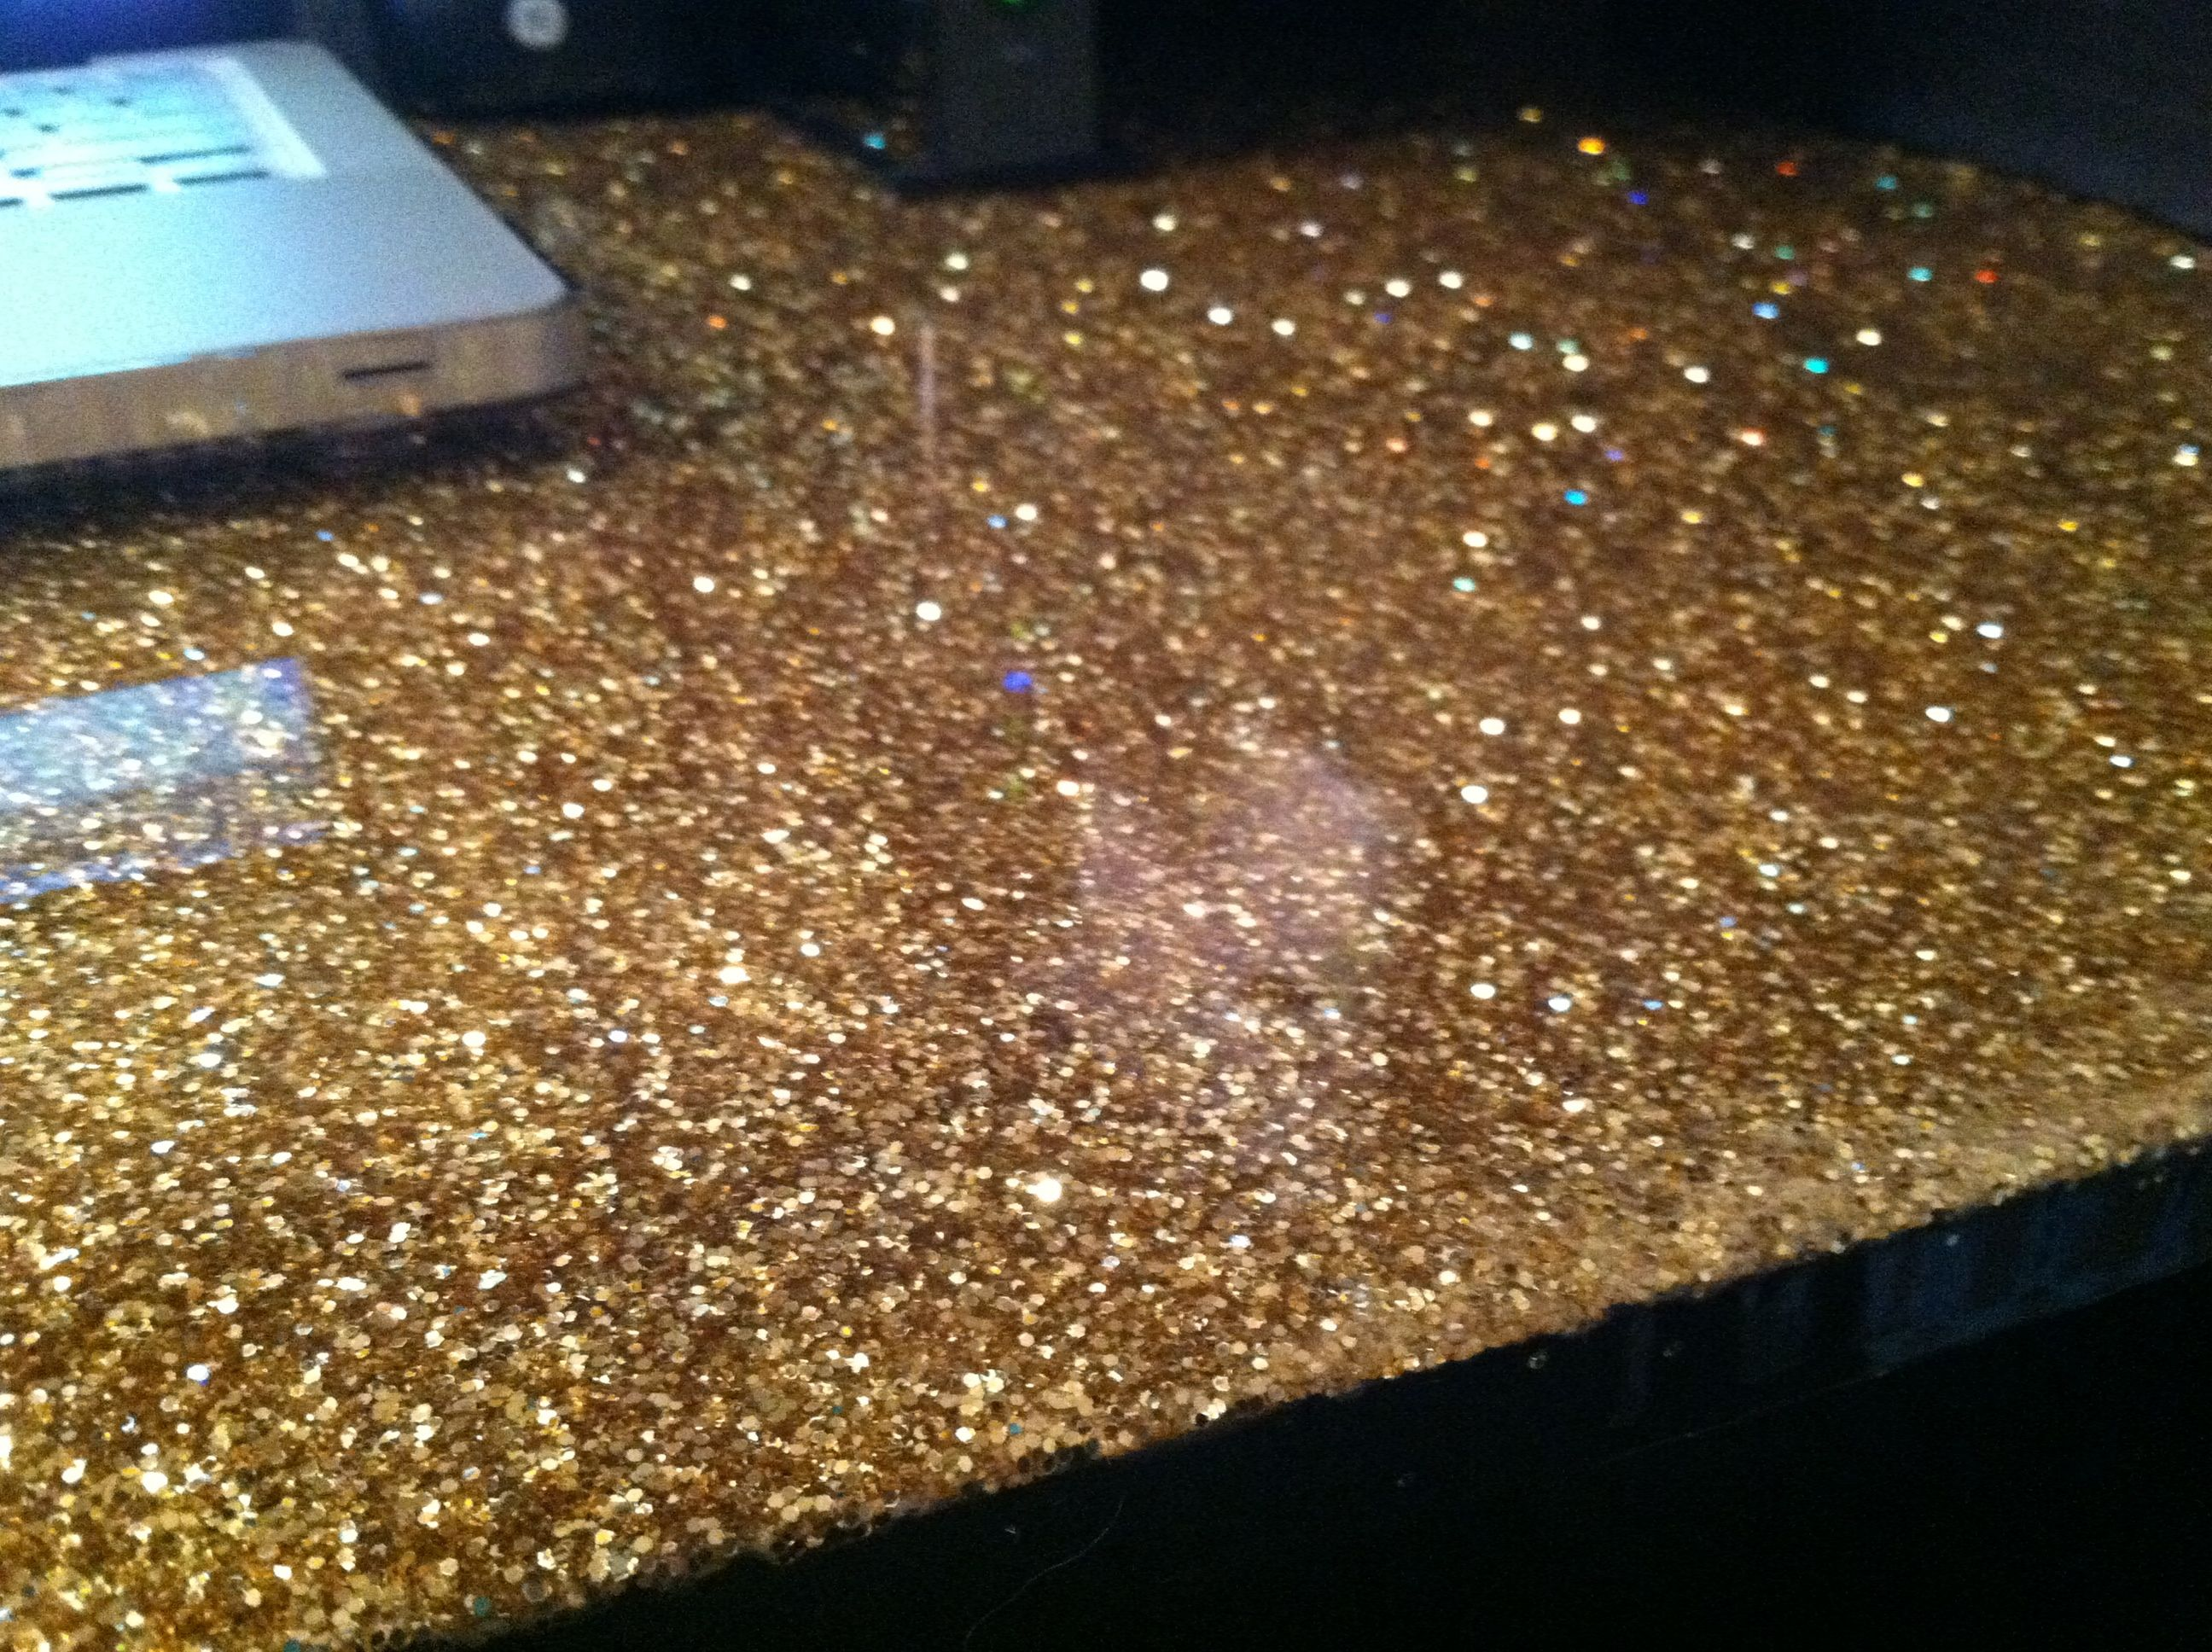 Pin By Melody Recktenwald On Home Diy Glam Pinterest